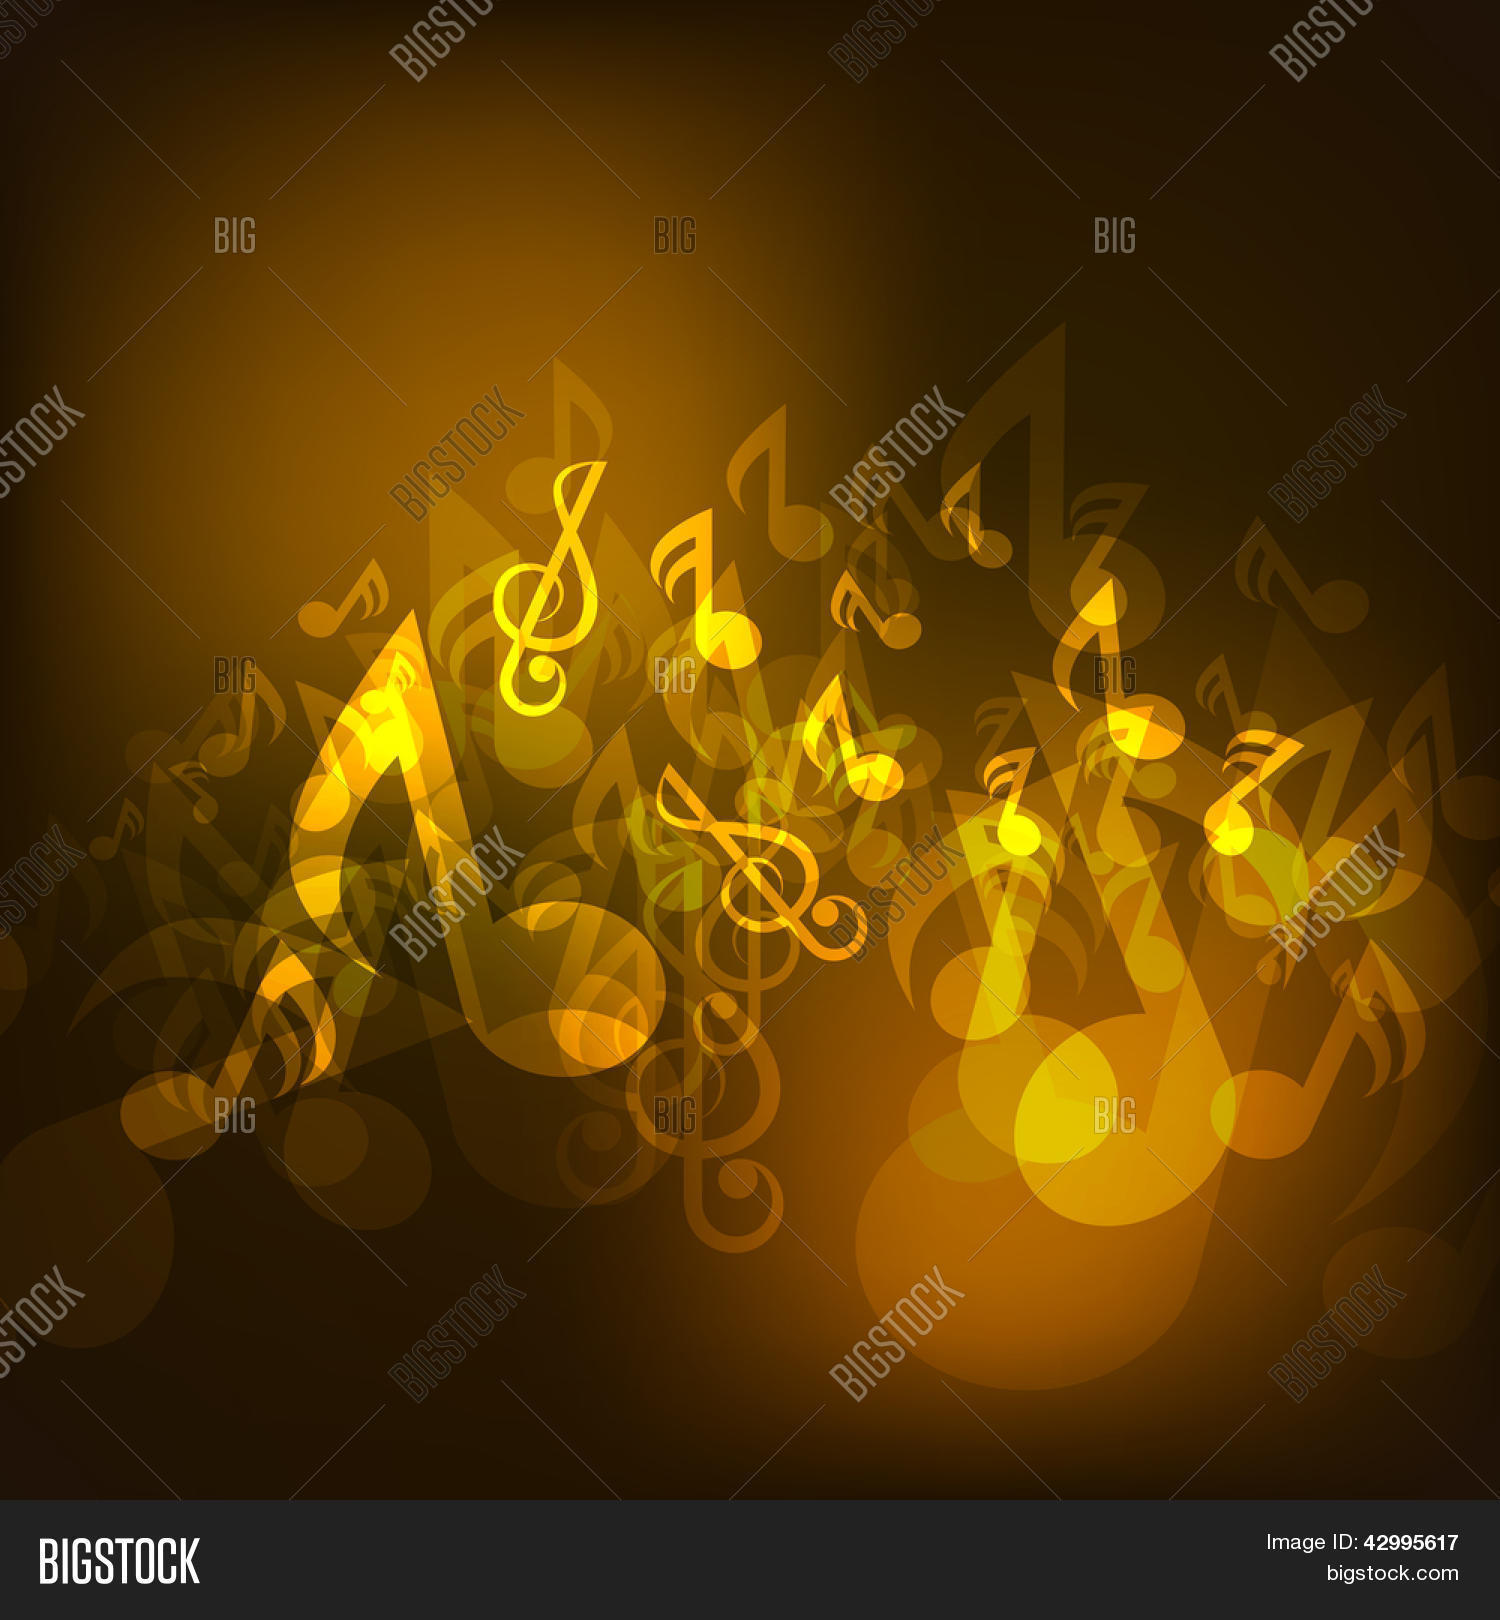 Suficiente Shiny Musical Notes Background, Vector & Photo   Bigstock KE03